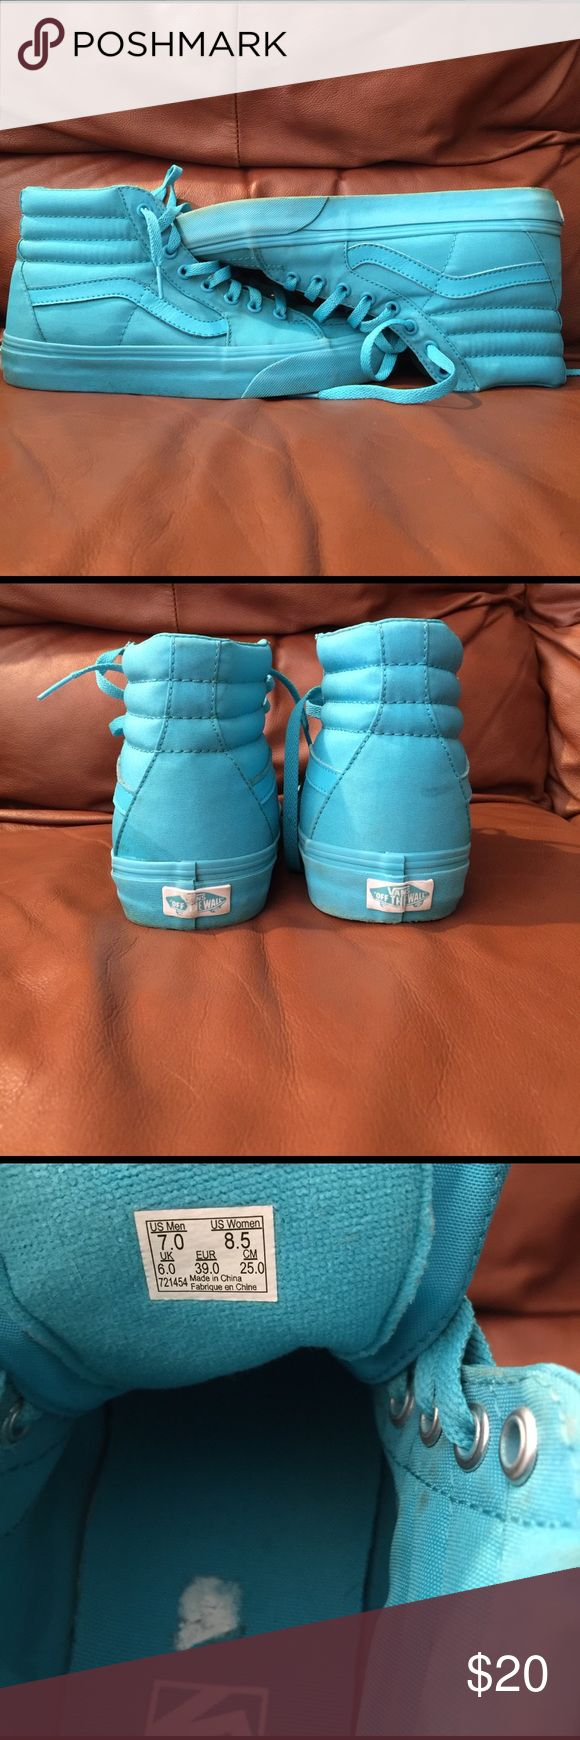 Vans high tops skate shoes Used baby blue high top vans skate shoes! Sold for 60 now selling for 20. #womensshoes #vans #babyblue #womensvans #hightopvans #boysvans #menssize7 Vans Shoes Sneakers